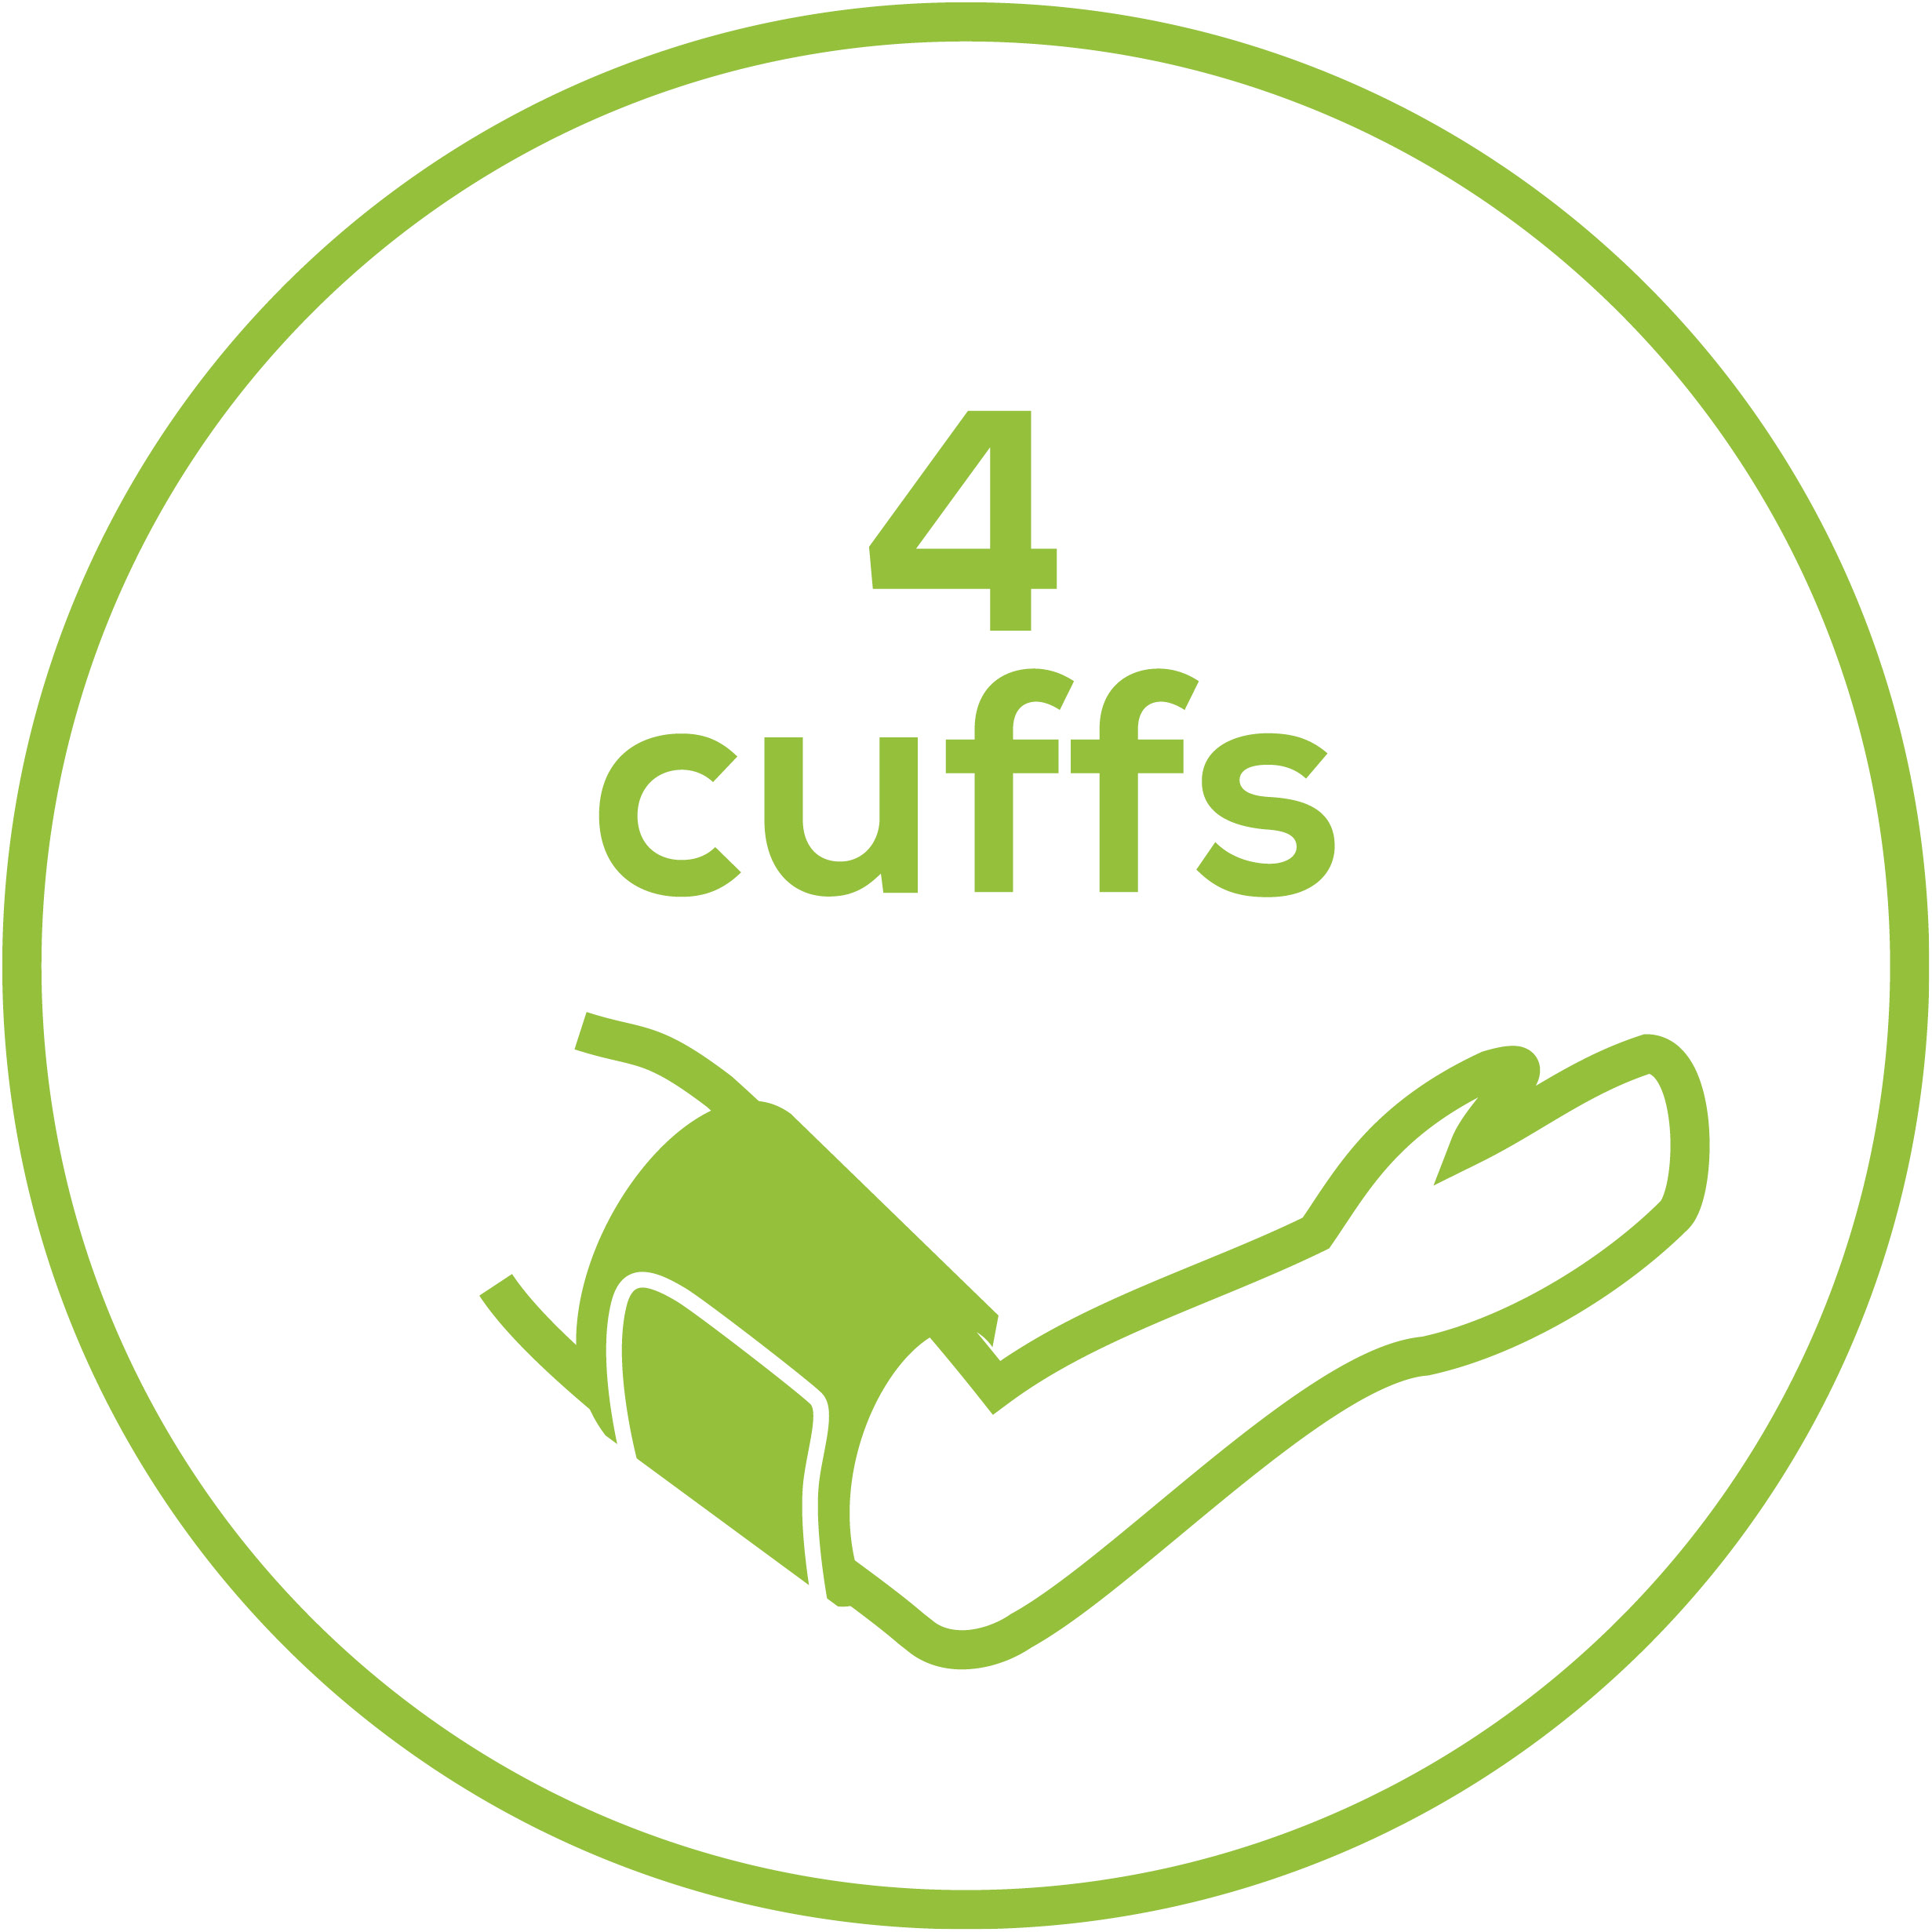 Cuffs 4 Cuffs for arms and legs